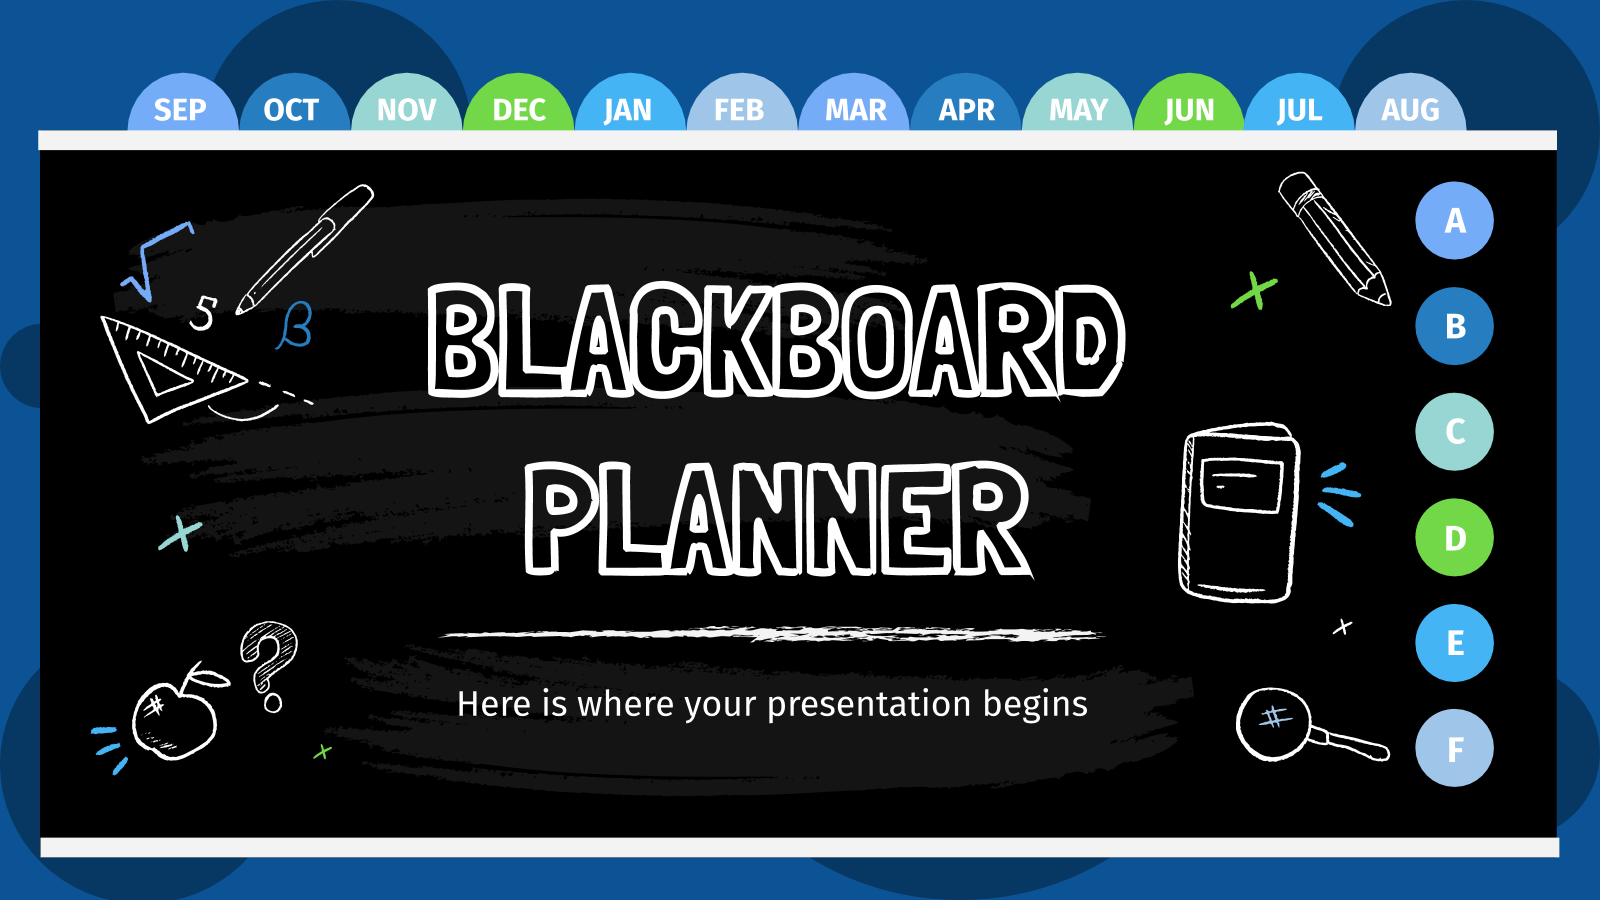 Blackboard Planner presentation template